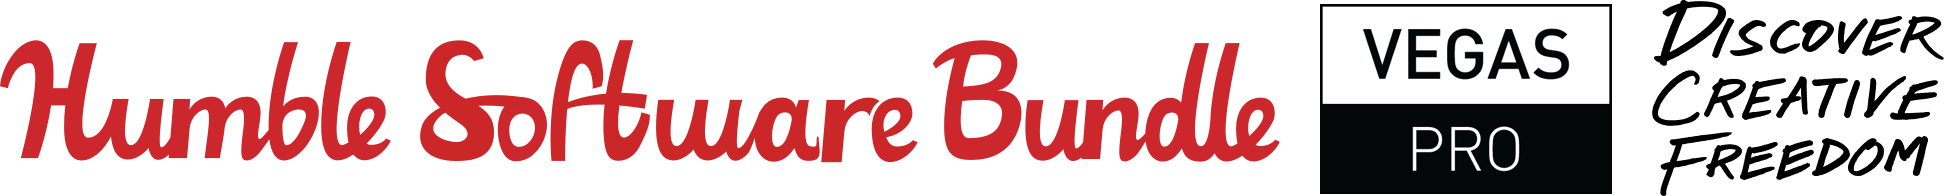 The Humble Software Bundle: VEGAS Pro: Discover Creative Freedom